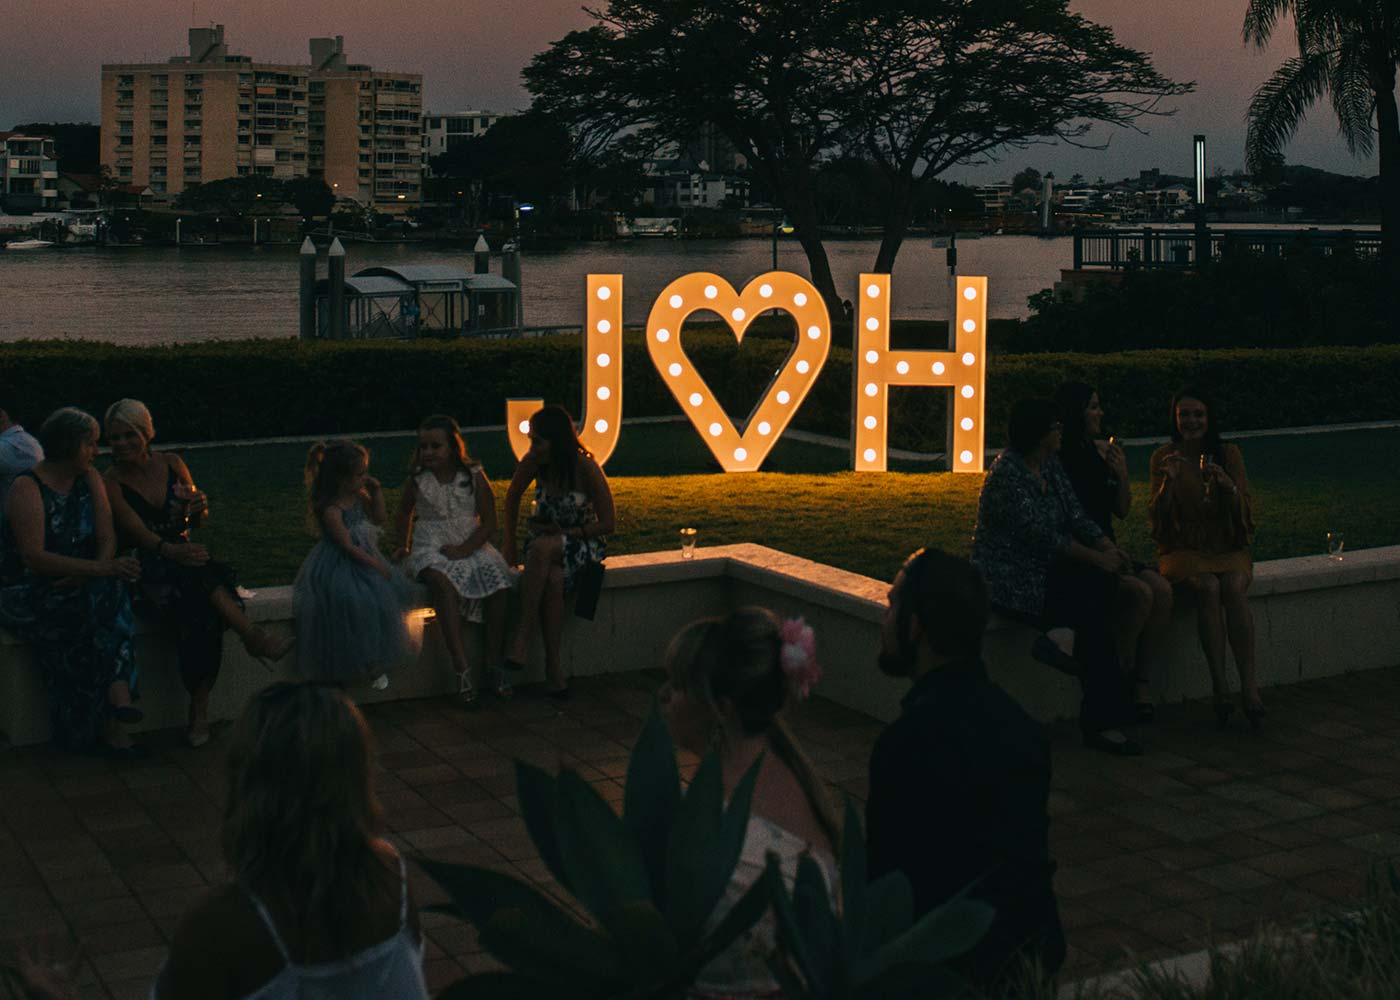 Light Up Letters 'J heart H'